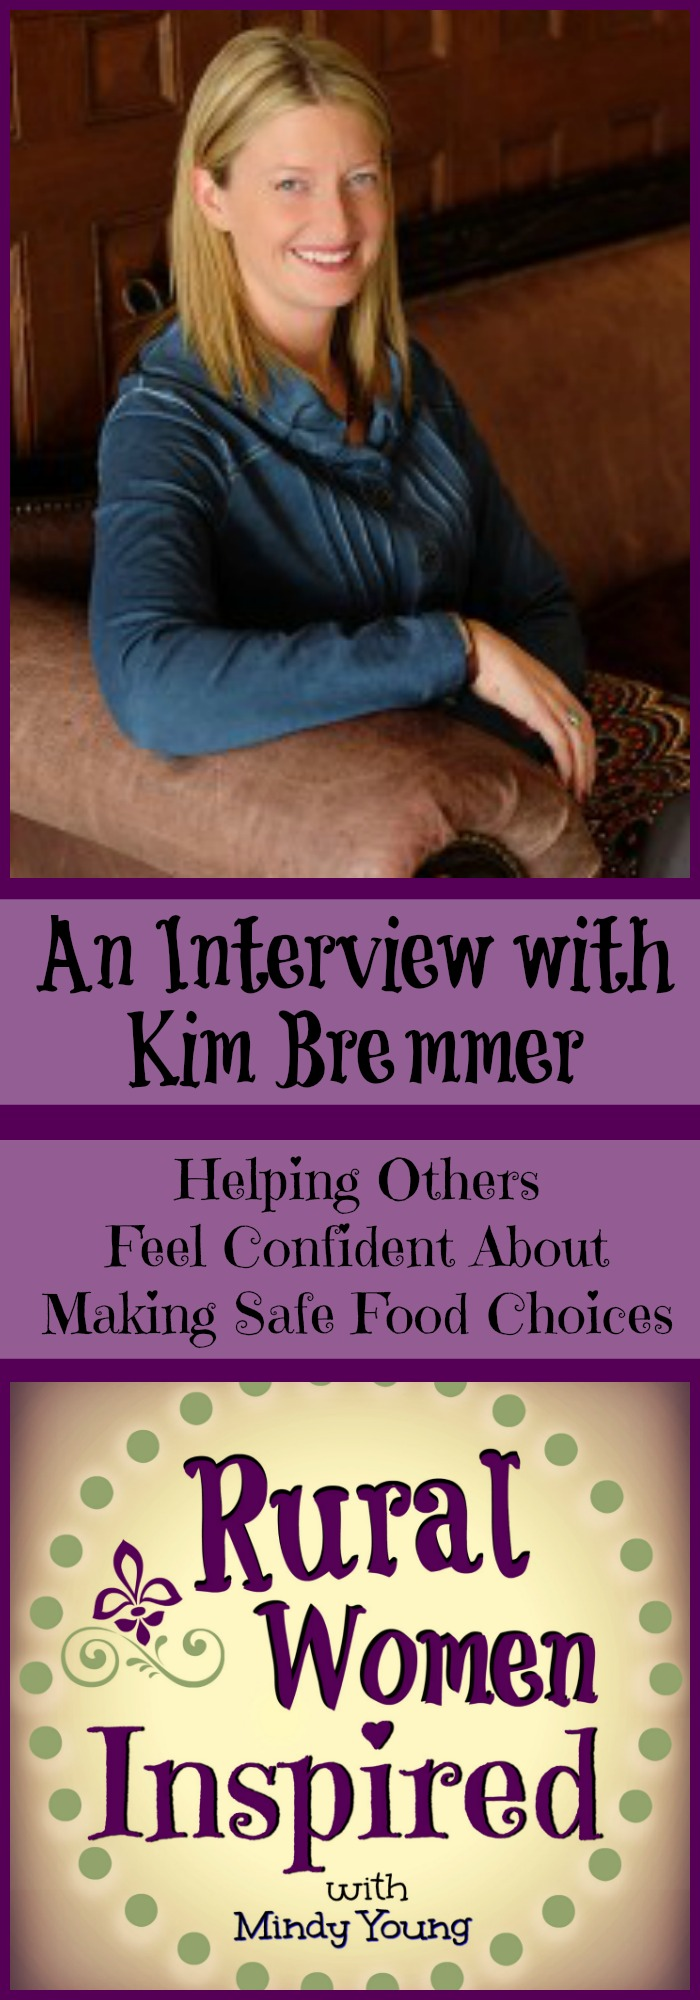 Want to make better discussions about agriculture? Kim Bremmer excels in her ability helping others feel confident about making safe food choices and how that food is produced.